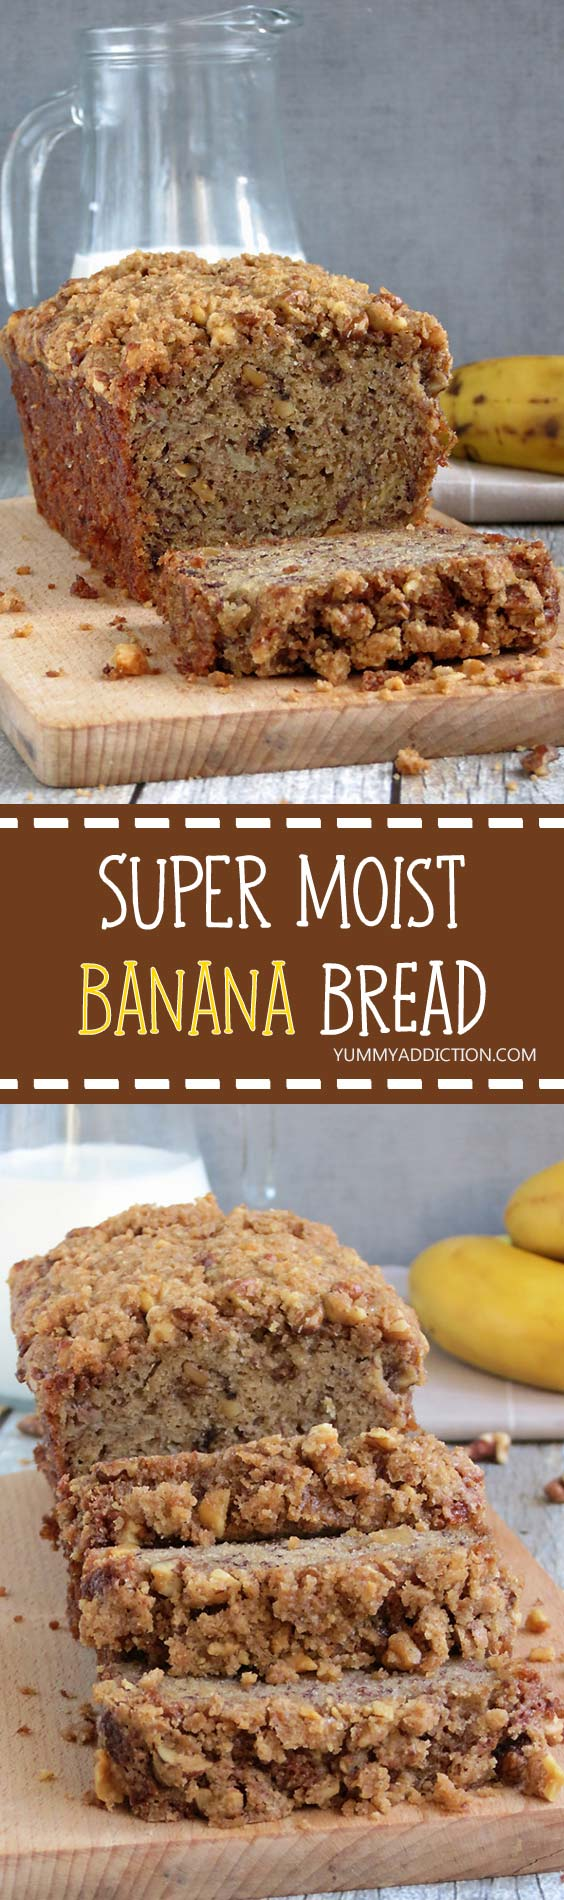 This super moist, fluffy, soft and flavorful banana bread with crunchy ...